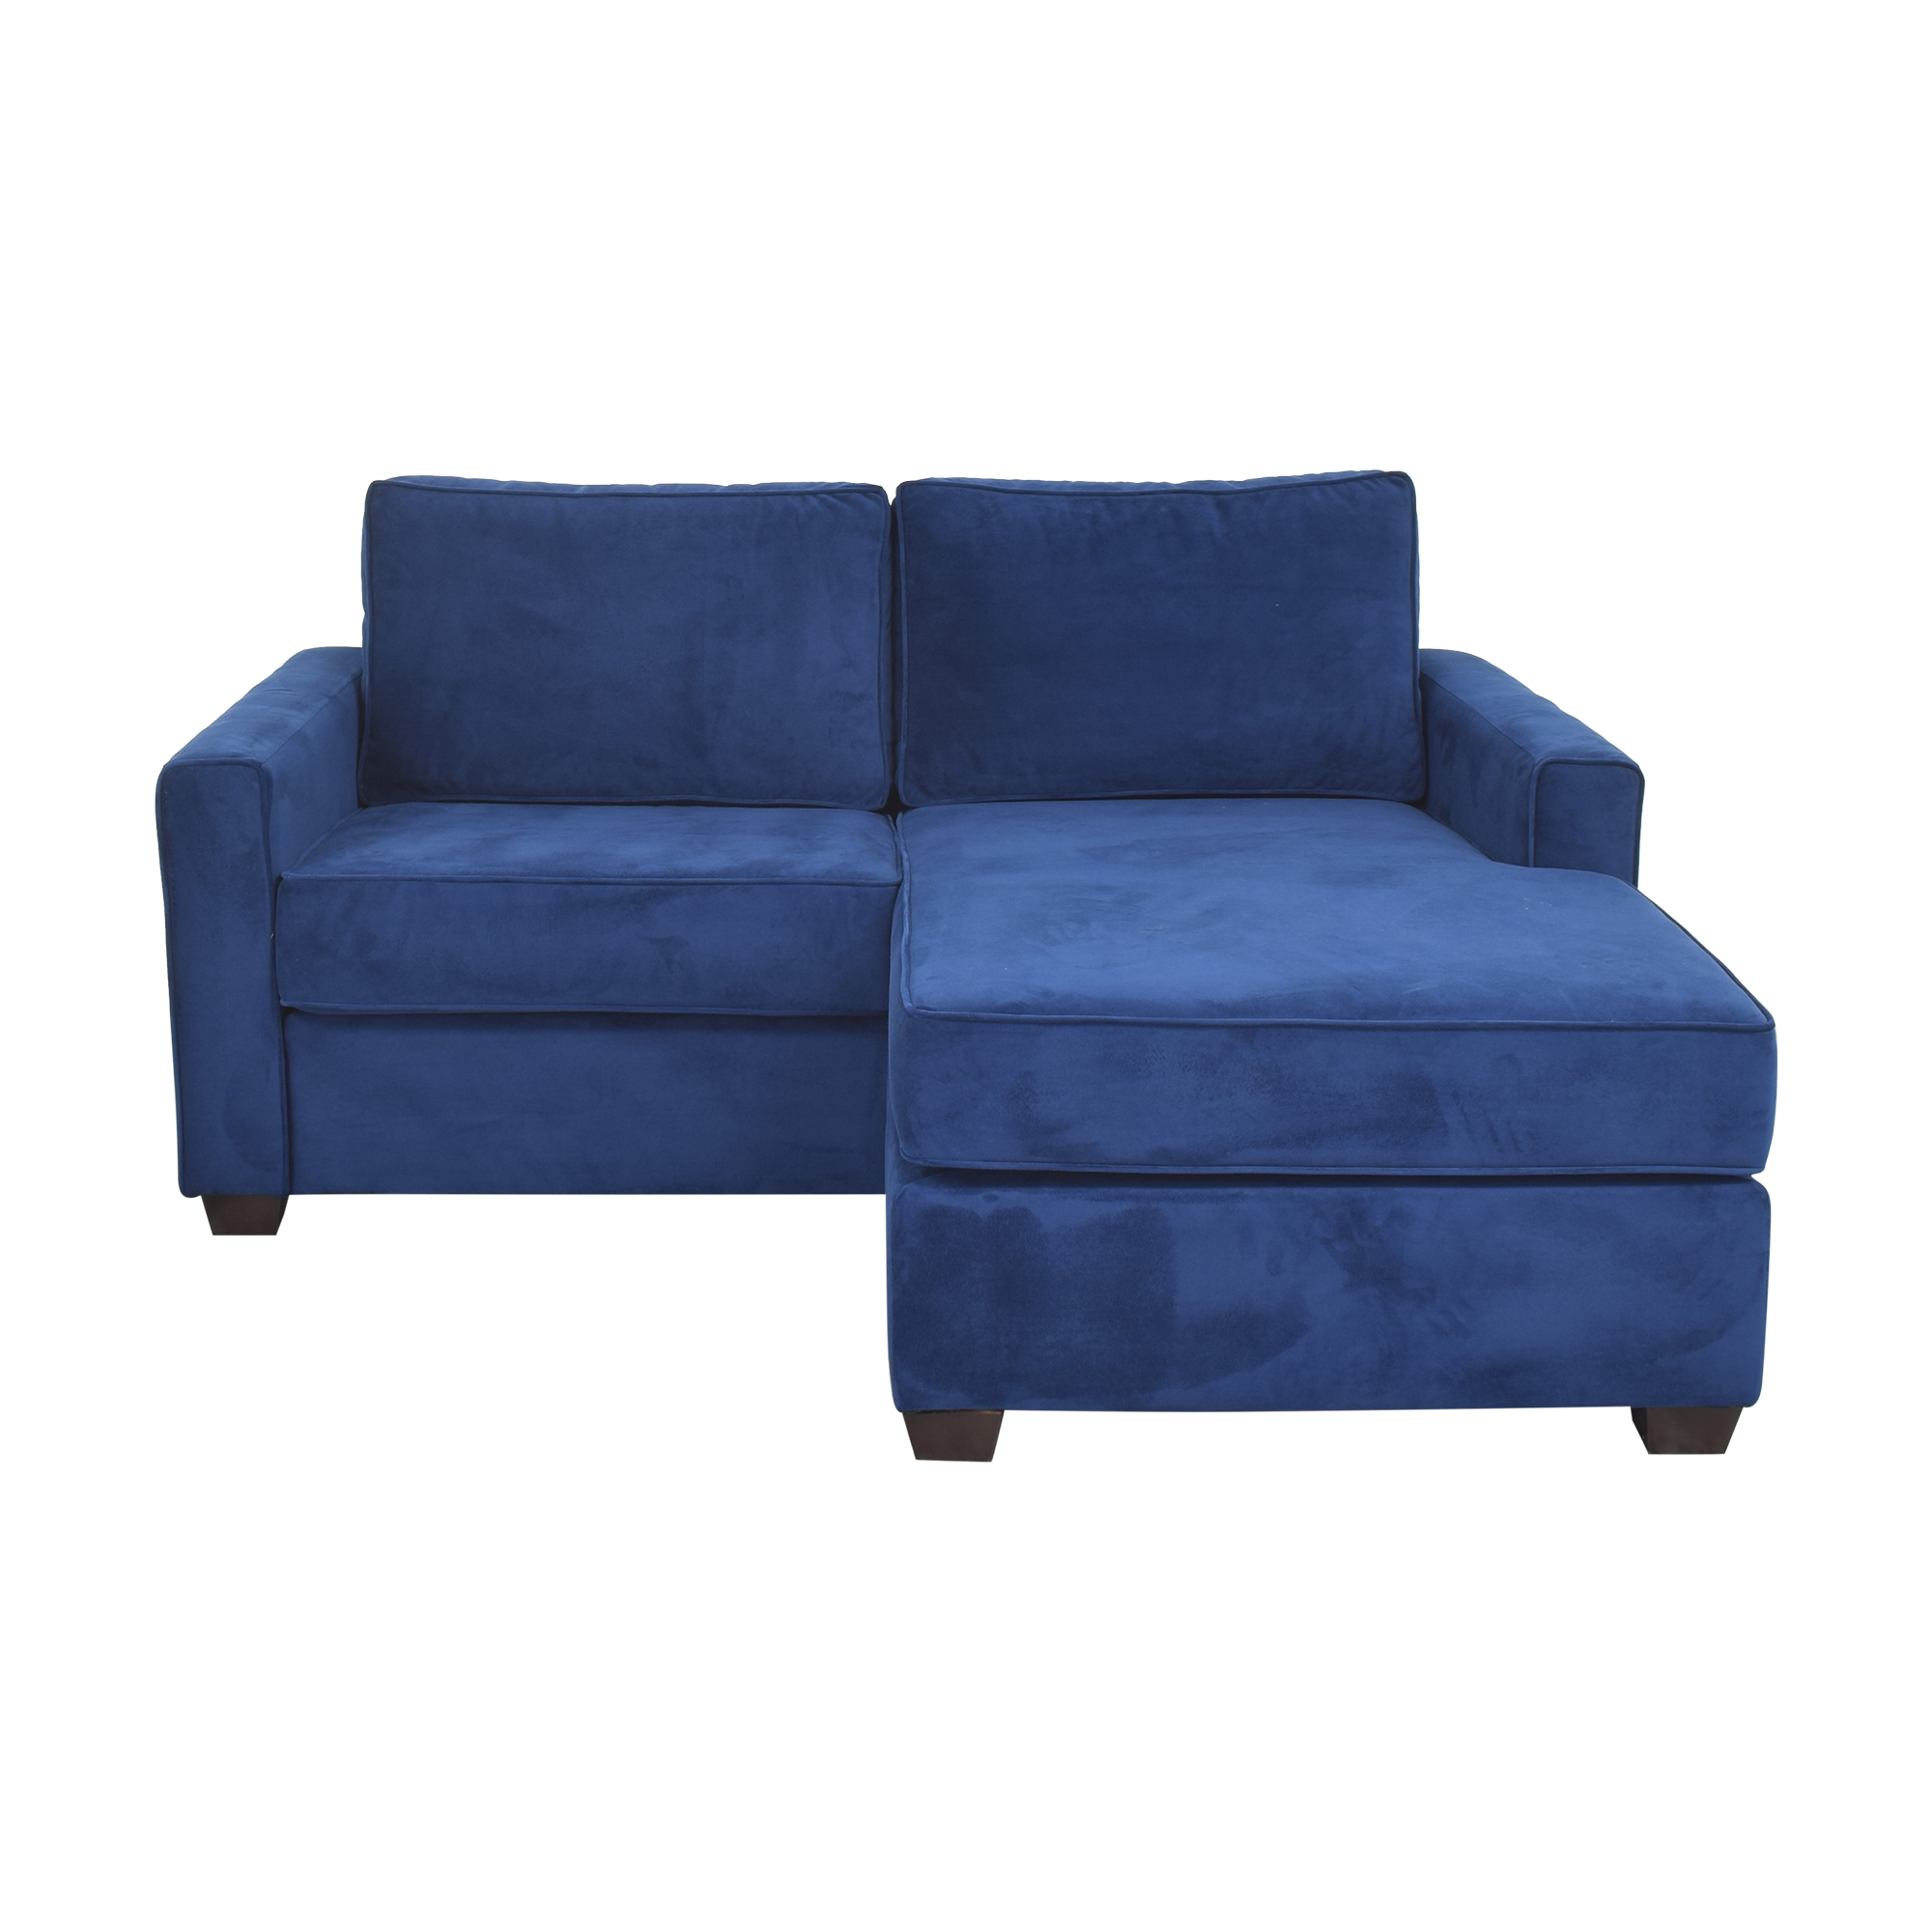 Pottery Barn Pottery Barn SoMa Fremont Square Arm Upholstered Sofa with Reversible Chaise Sectional nyc